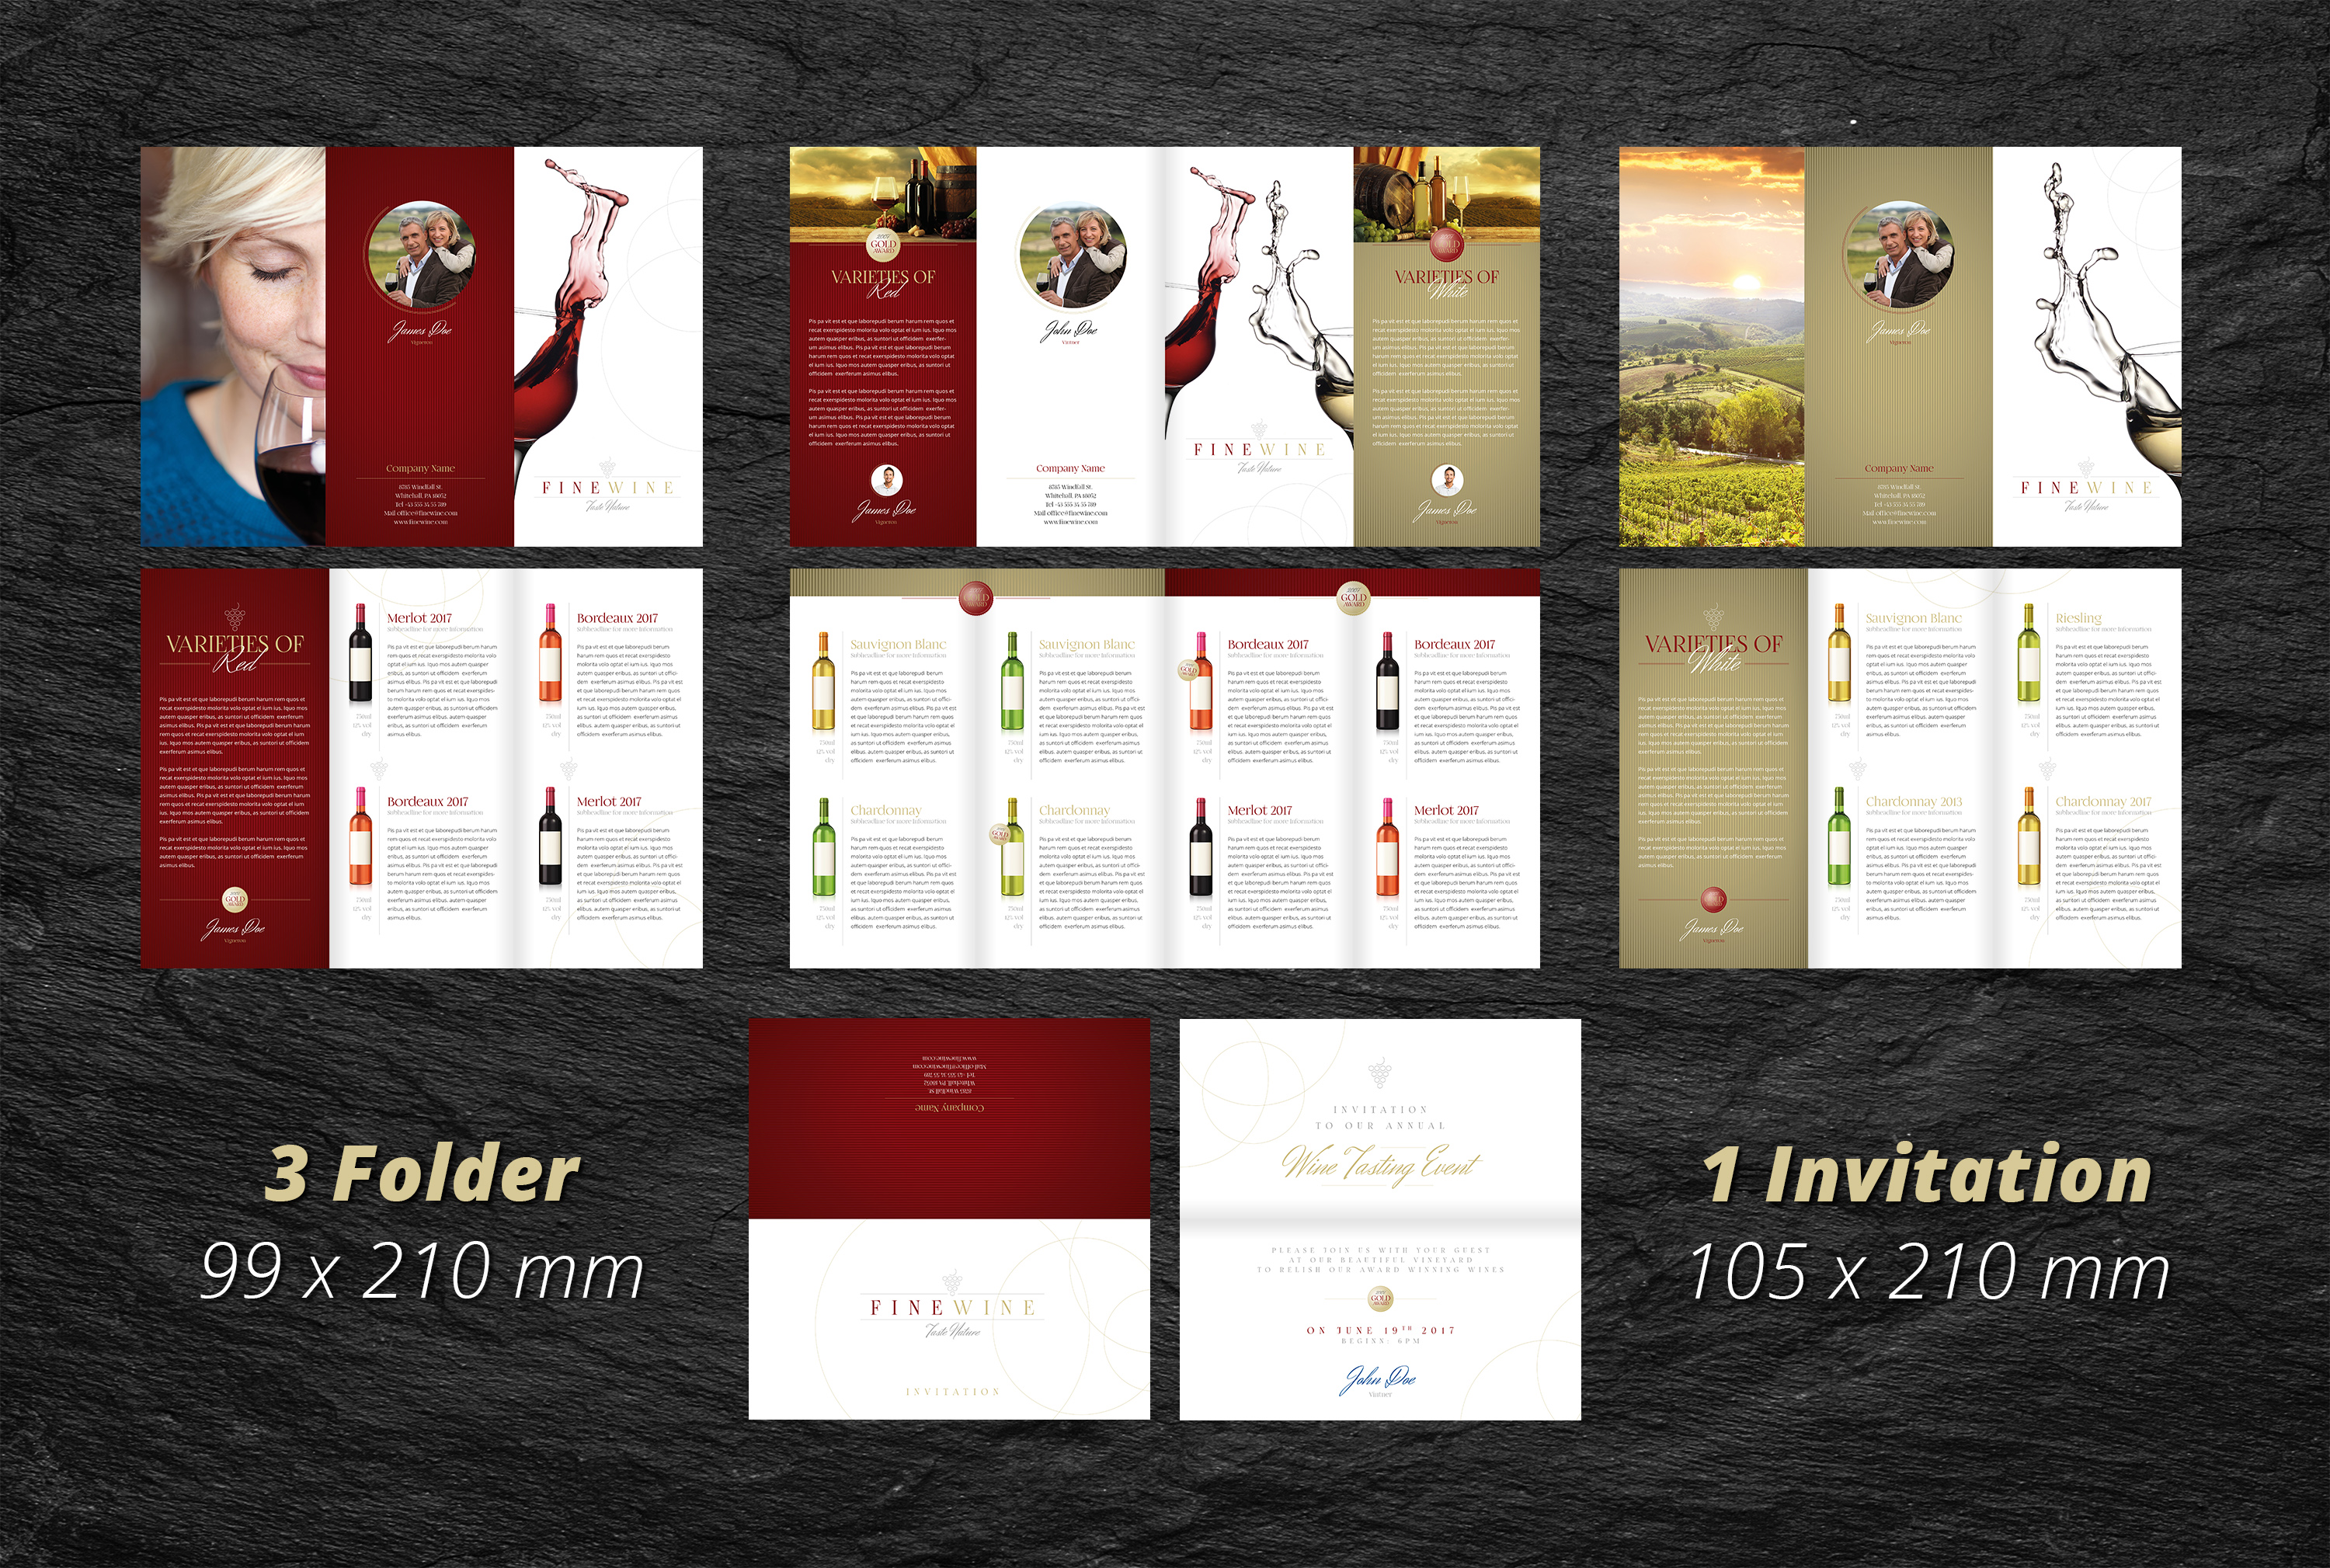 Fine Wine Vol.2 - Folder & Invitation example image 2